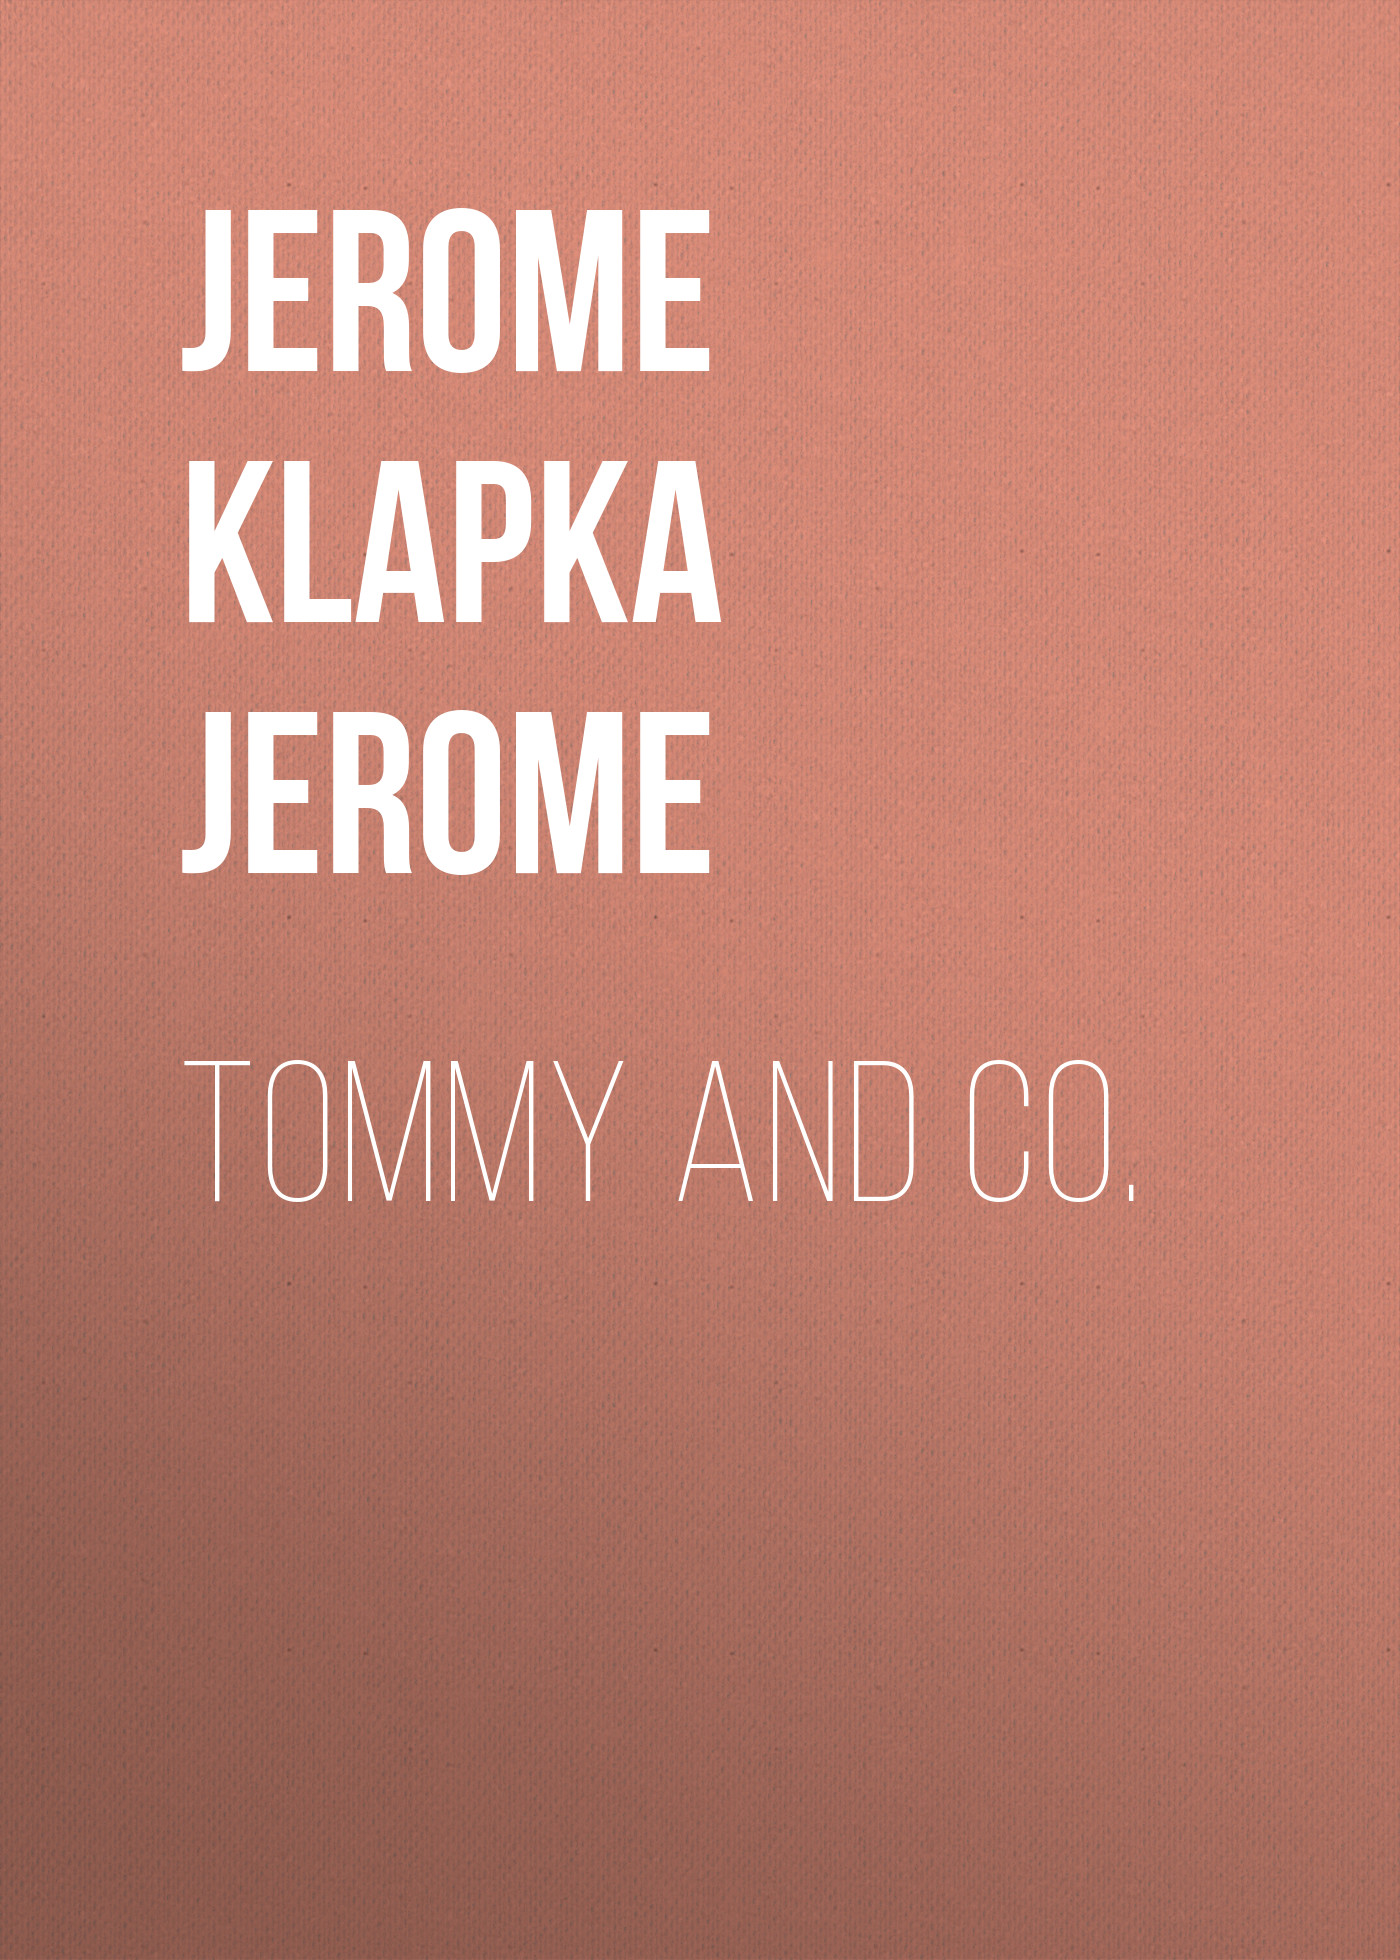 Джером Клапка Джером Tommy and Co. джером клапка джером evergreens